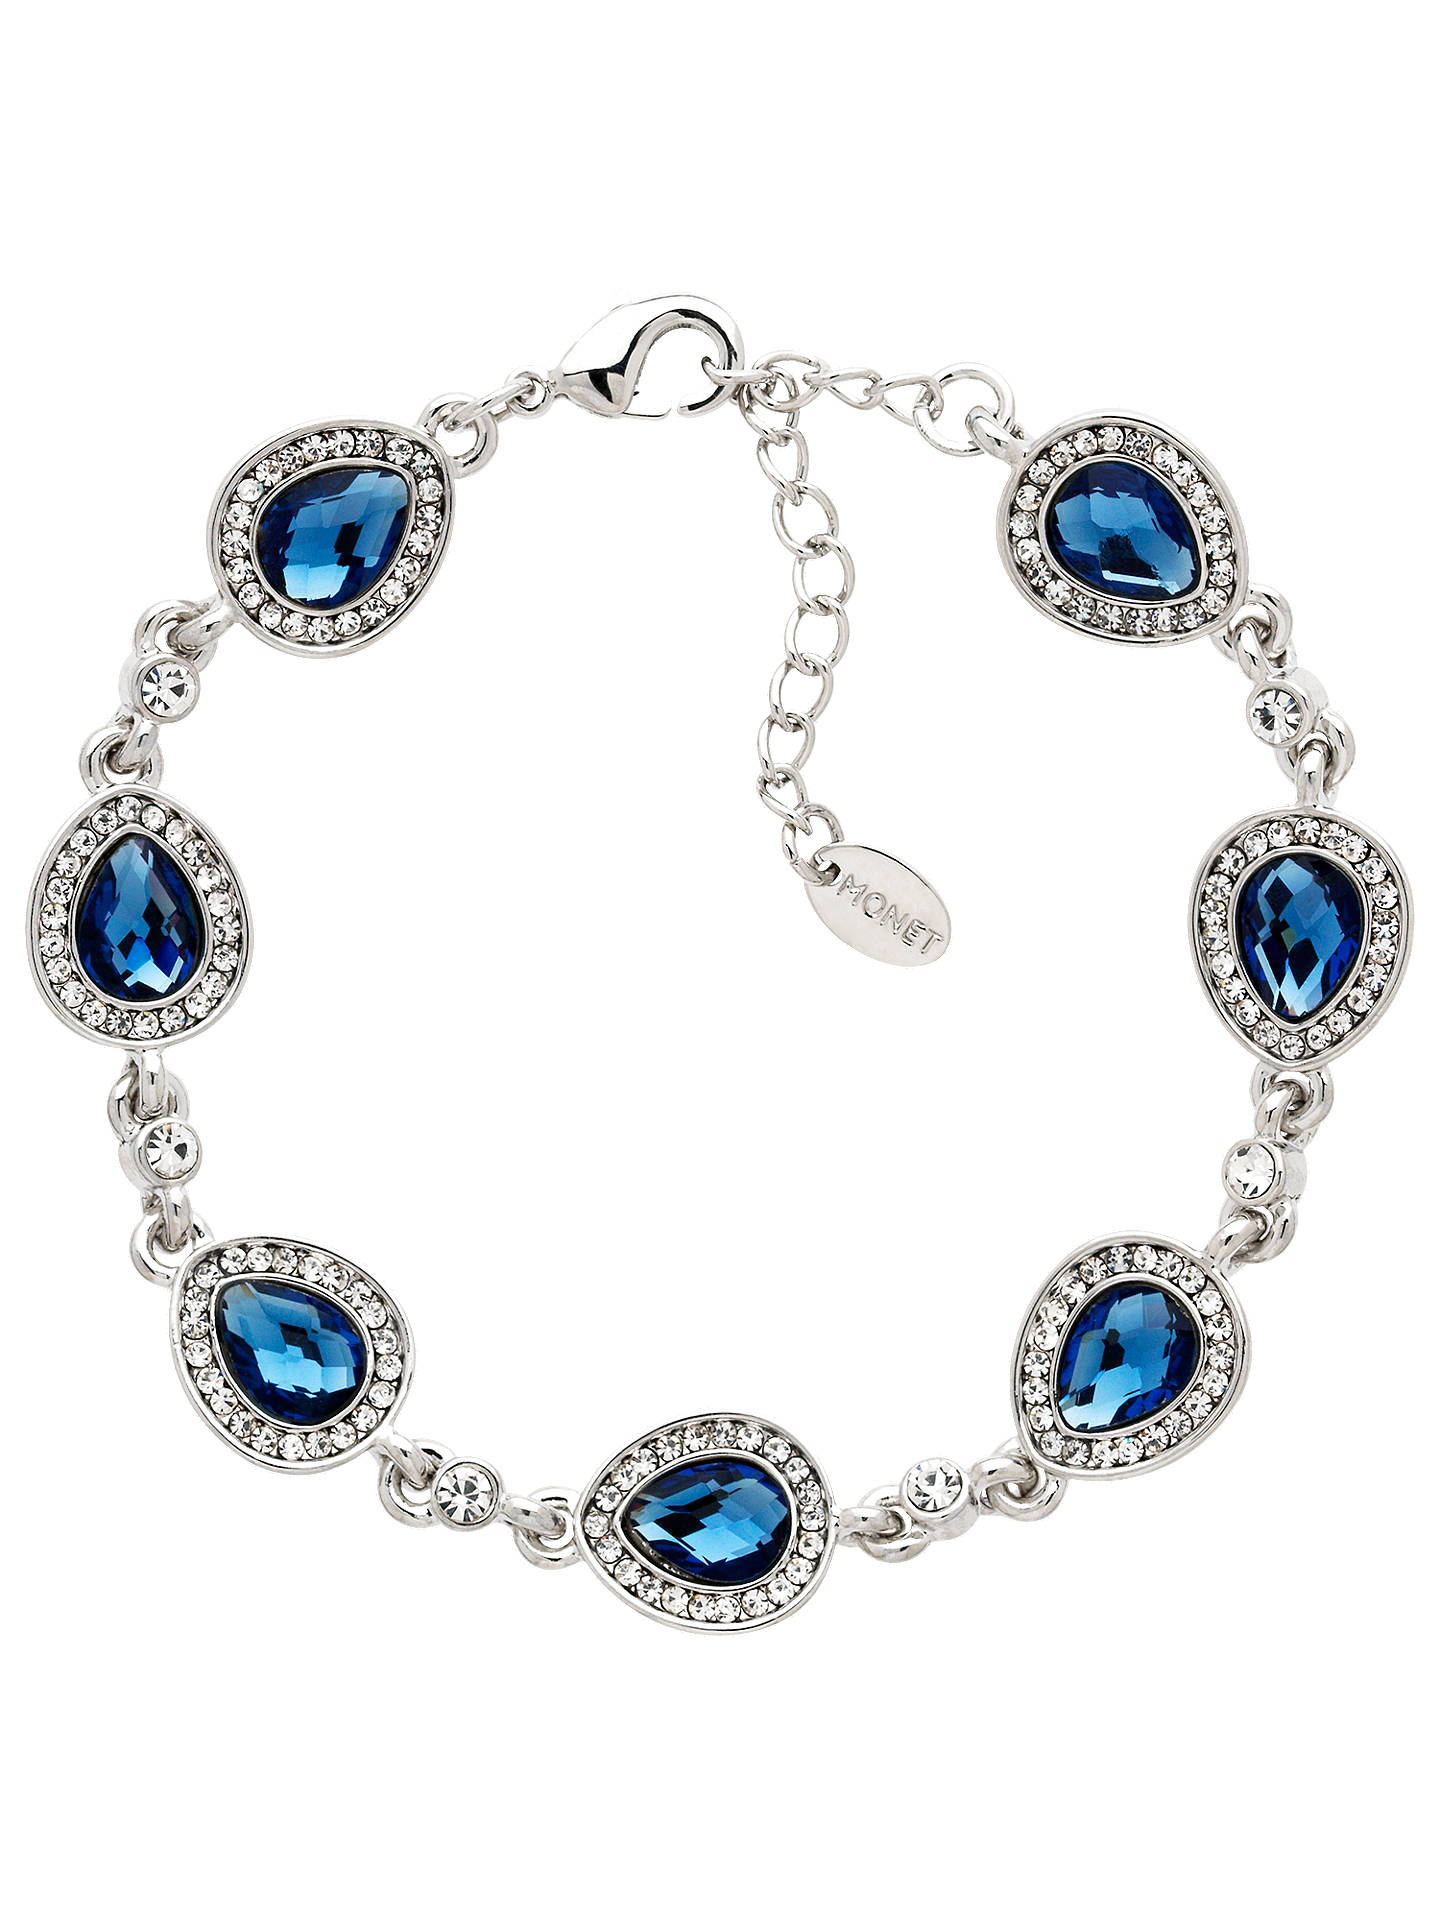 BuyMonet Glass Crystal Teardrop Chain Bracelet, Silver/Blue Online at johnlewis.com